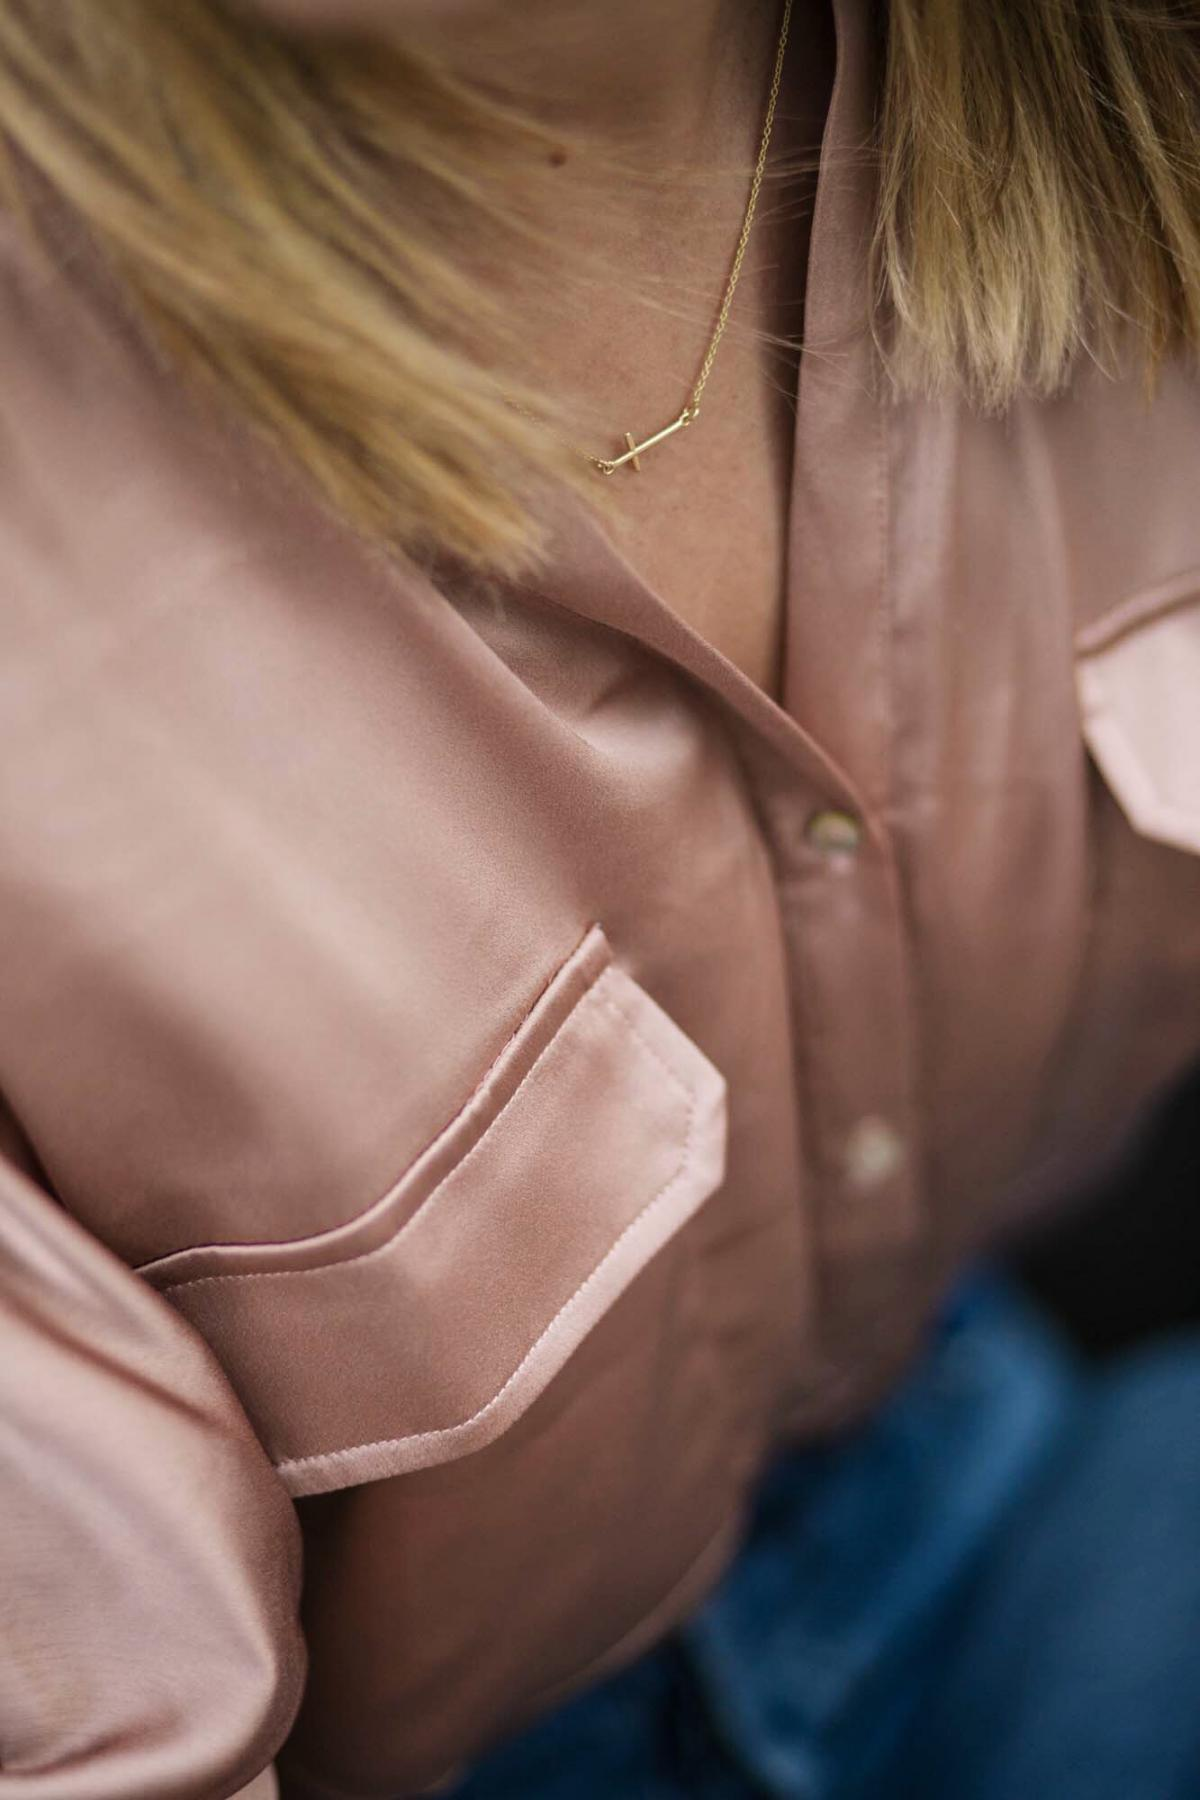 satin shirt, delicate gold cross necklace, dainty jewellery